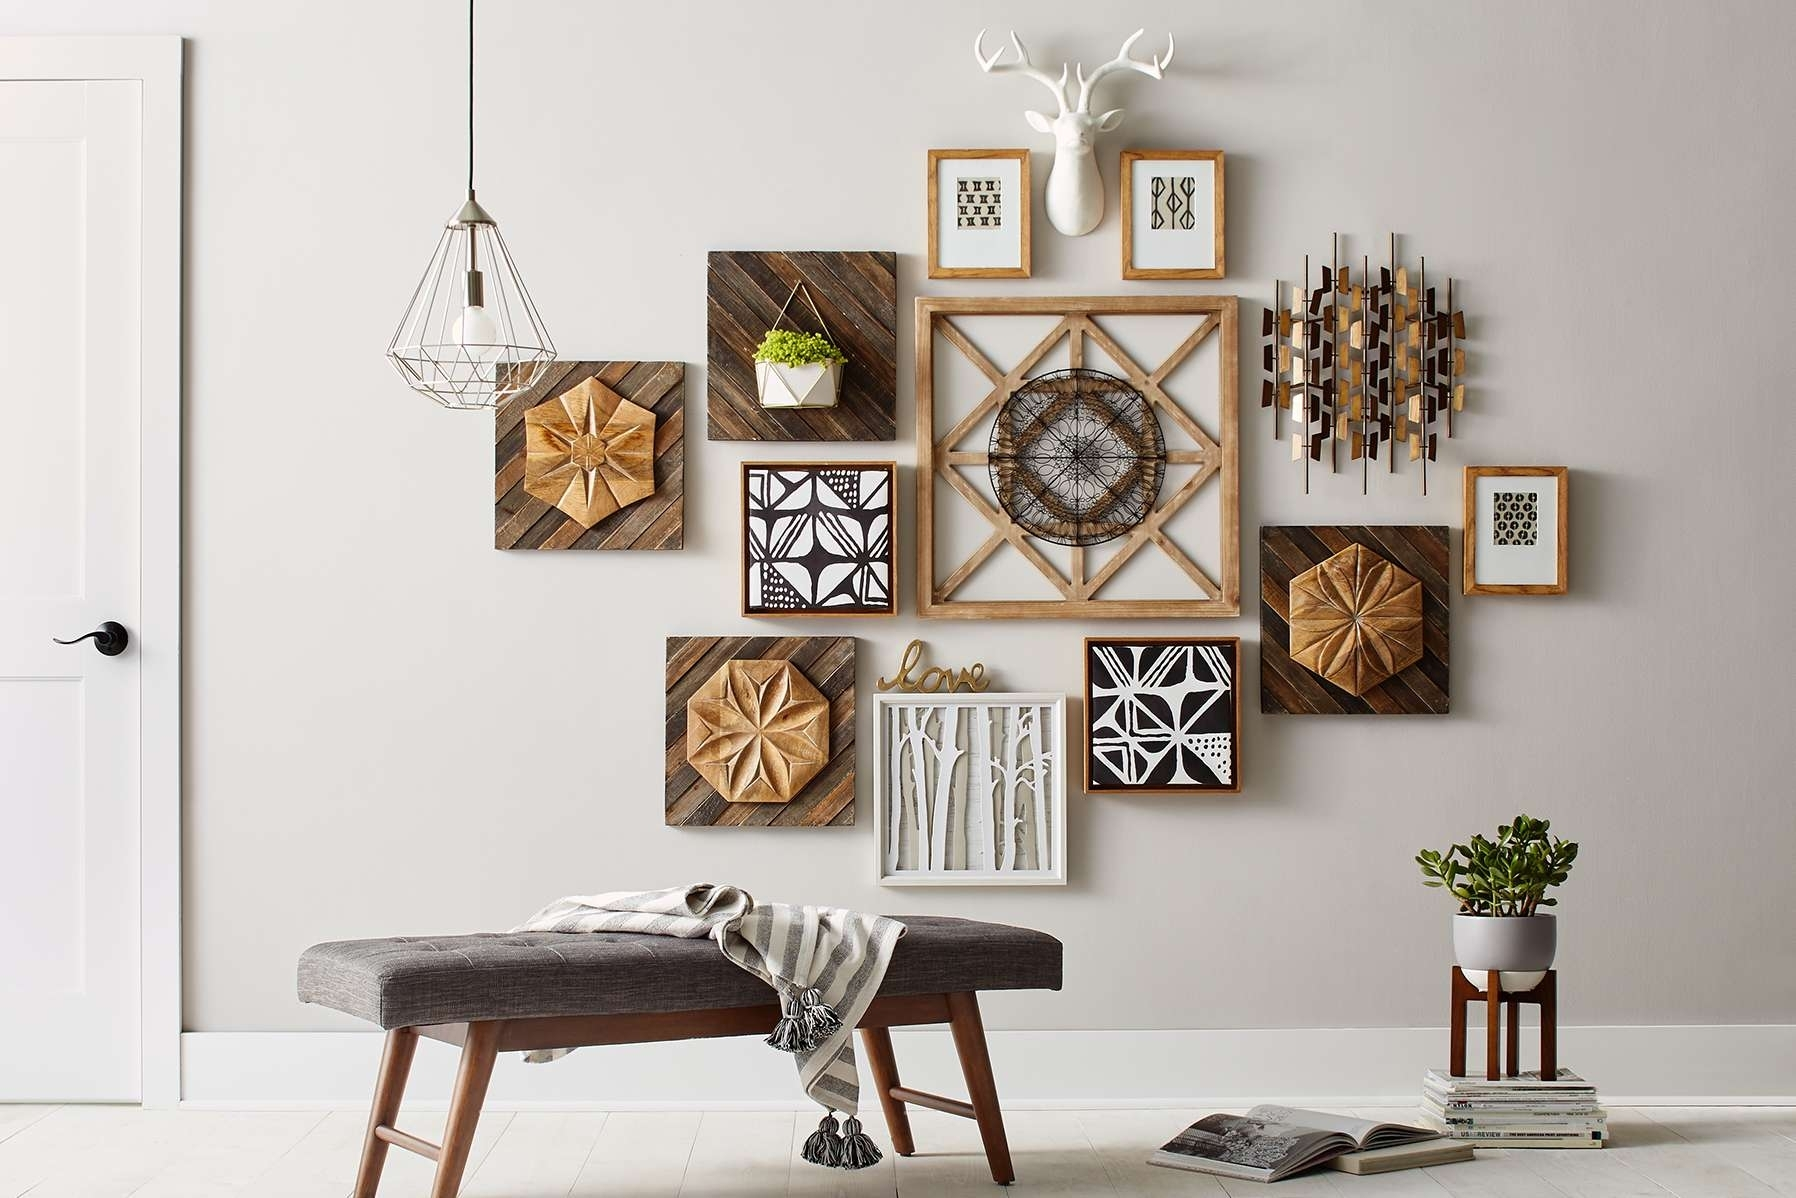 Wall Decor : Big Wall Art White Wall Decor Home Wall Decor Wood Throughout Most Recently Released Modern Wall Accents (View 13 of 15)